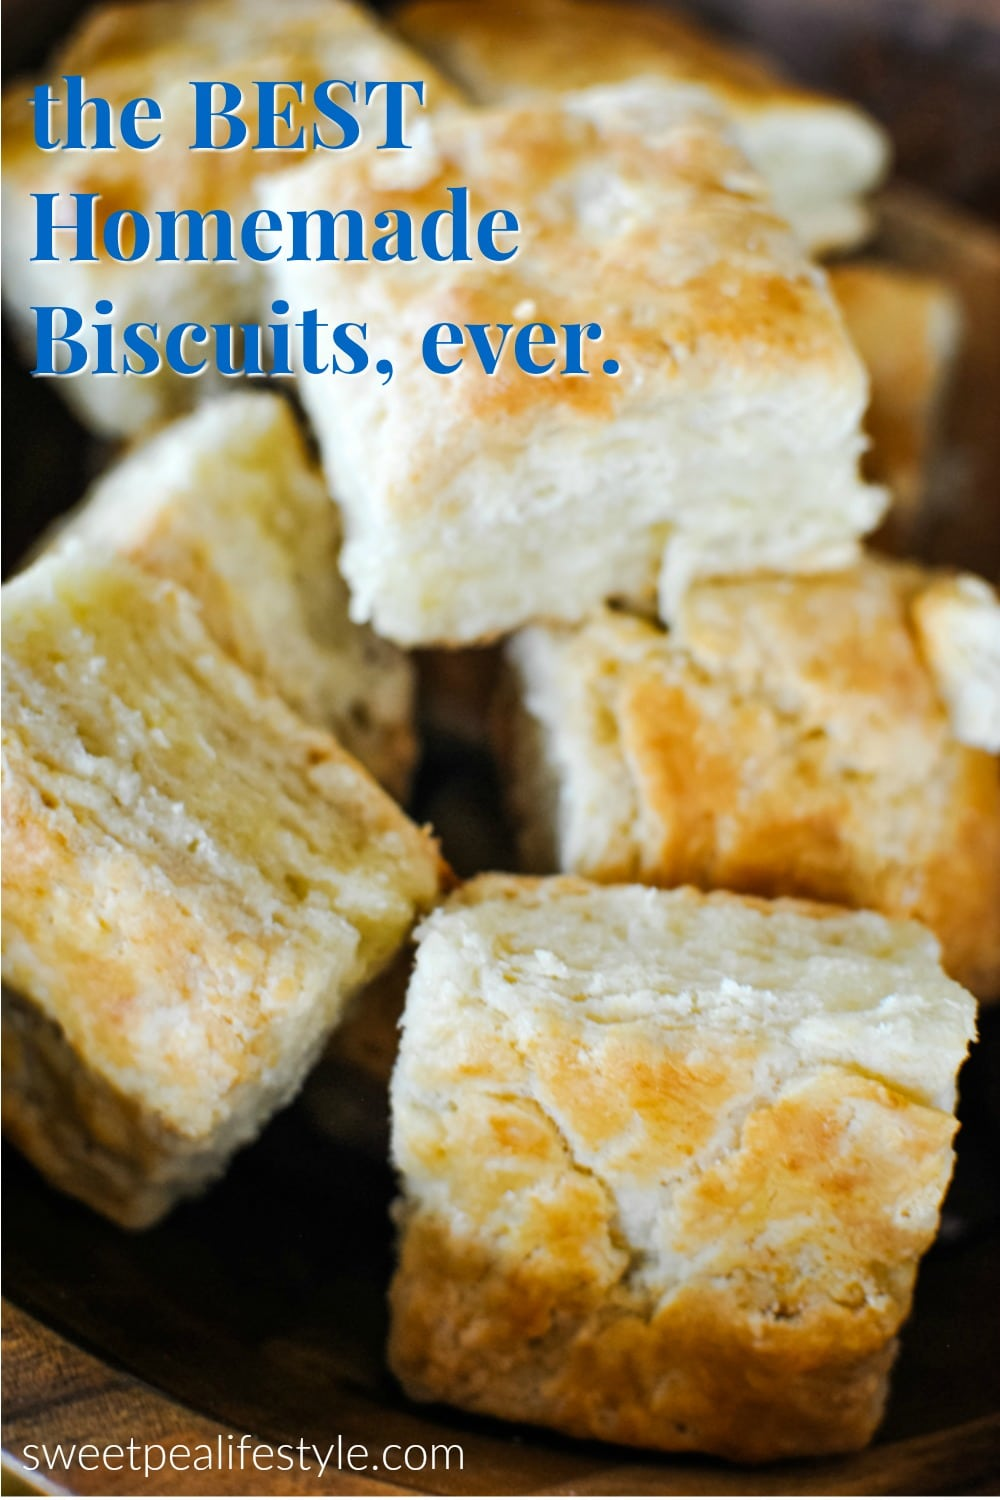 the best homemade biscuits ever from sweetpea lifestyle